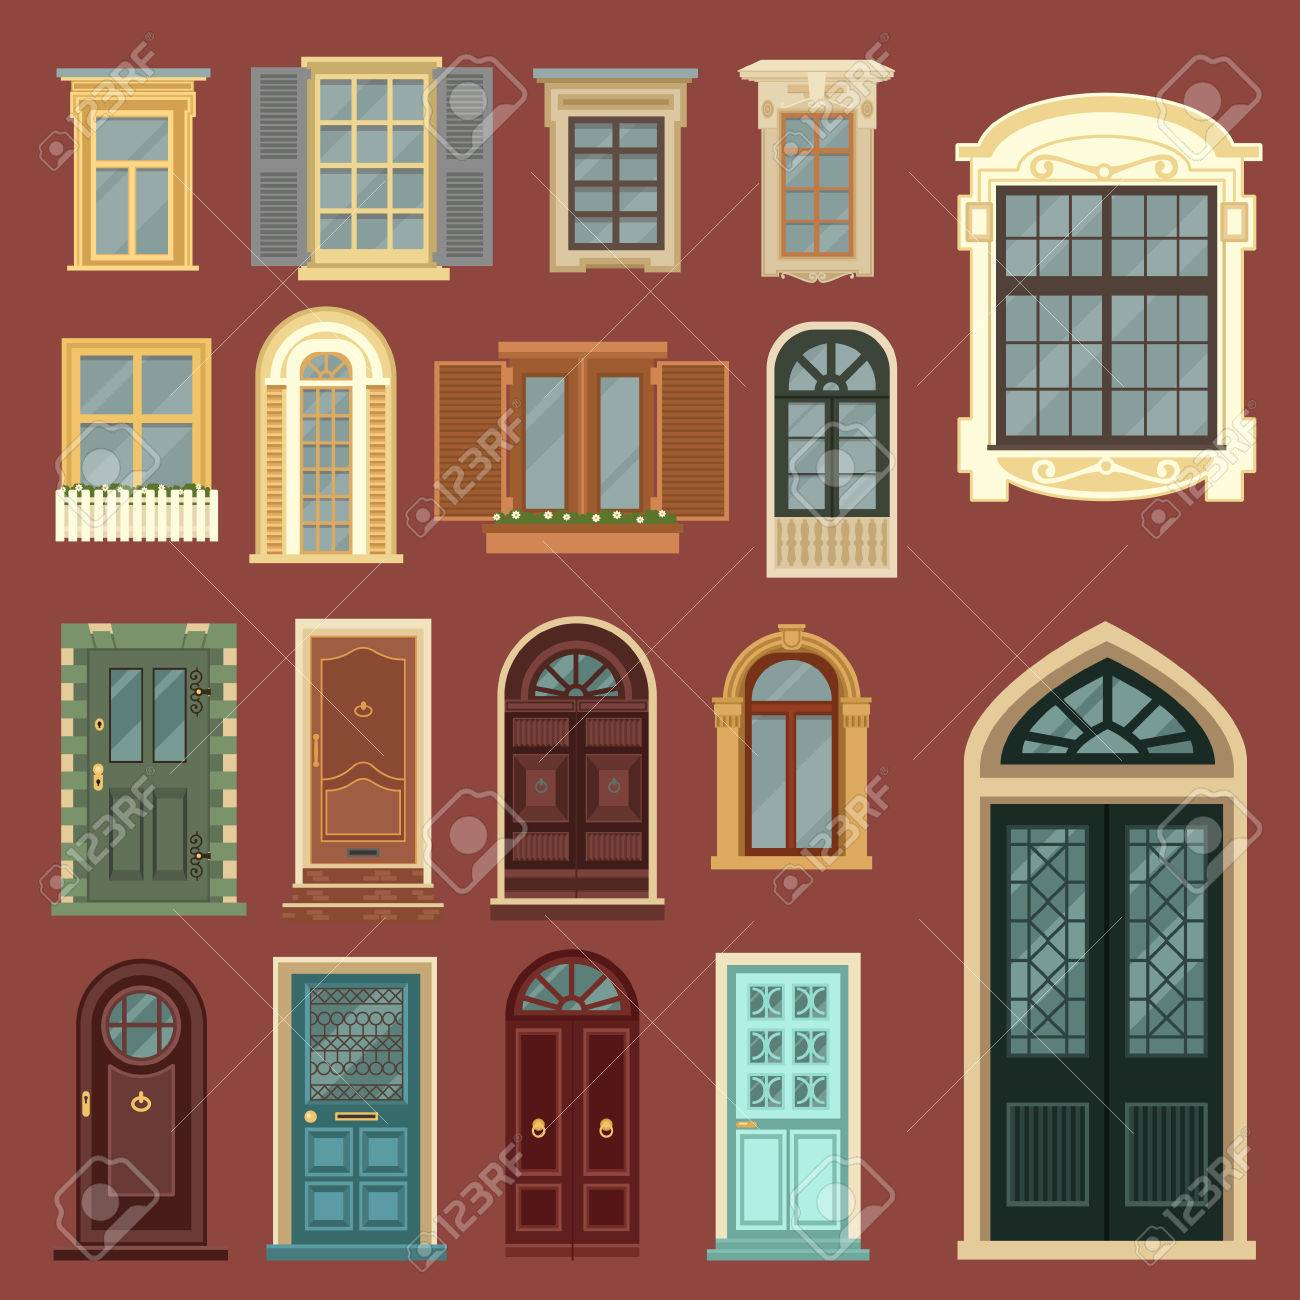 Impressive Doors to Protect Your House And Improve The Aesthetics